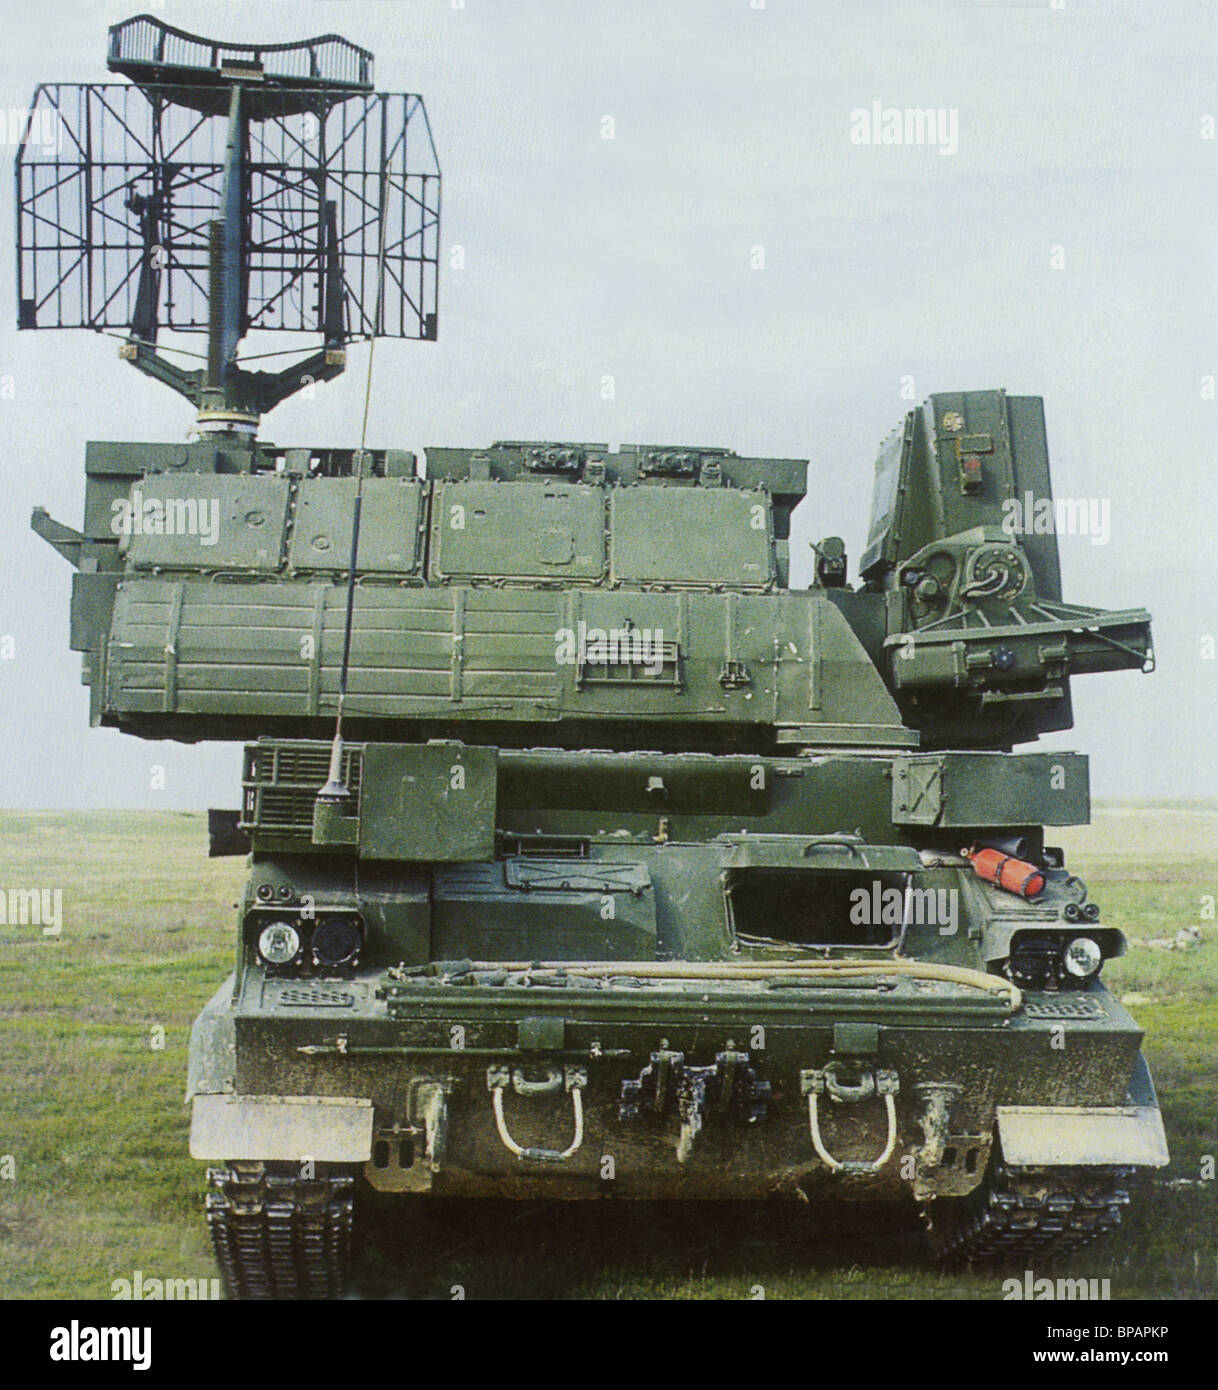 A Tor-M1 anti-aircraft missile complex - Stock Image